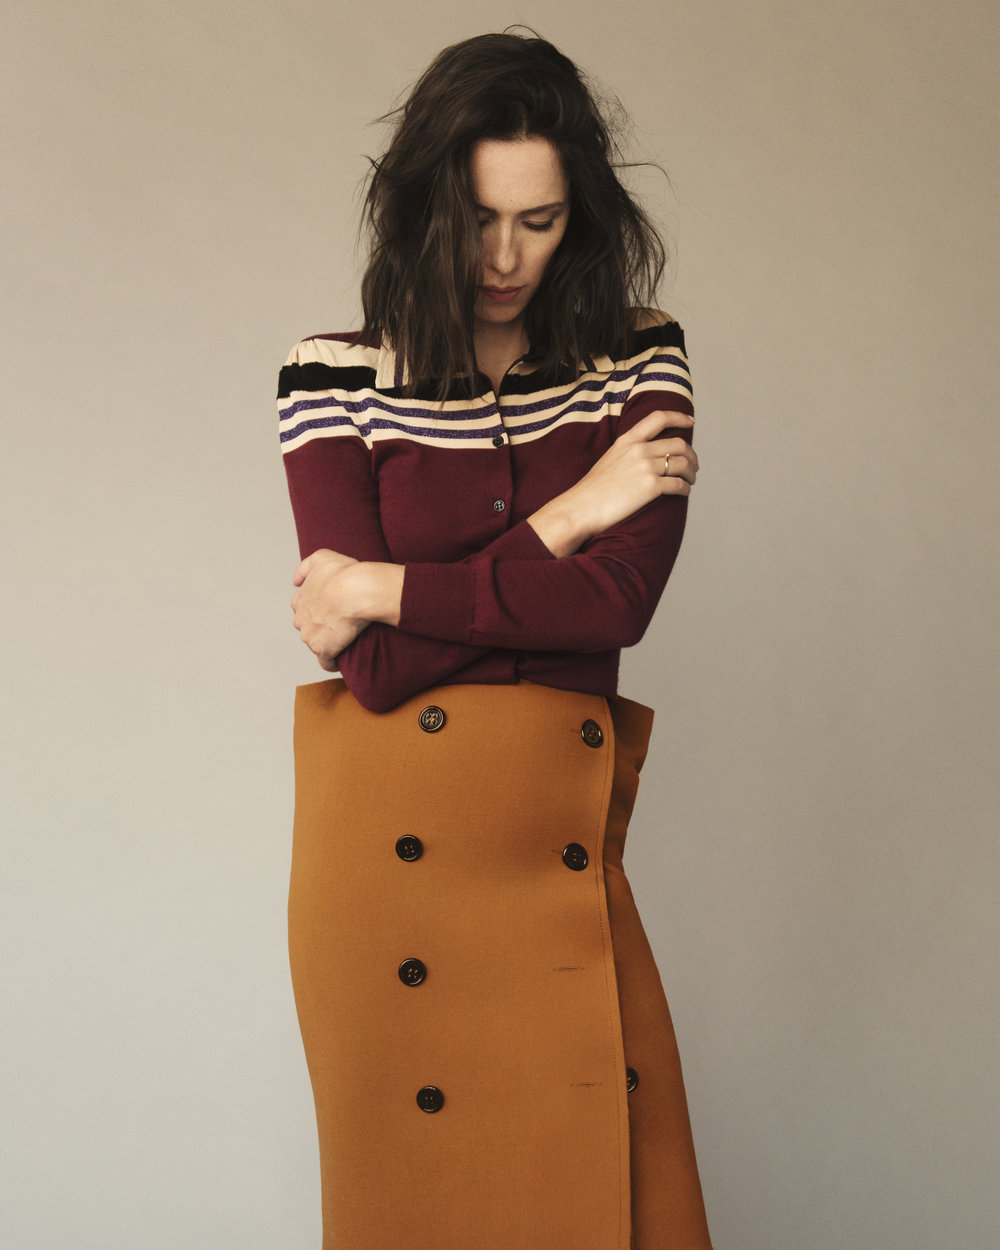 Sweater in barolo striped wool and skirt in dark leather new wool natte by   BOTTEGA VENETA    Fall/Winter 2017